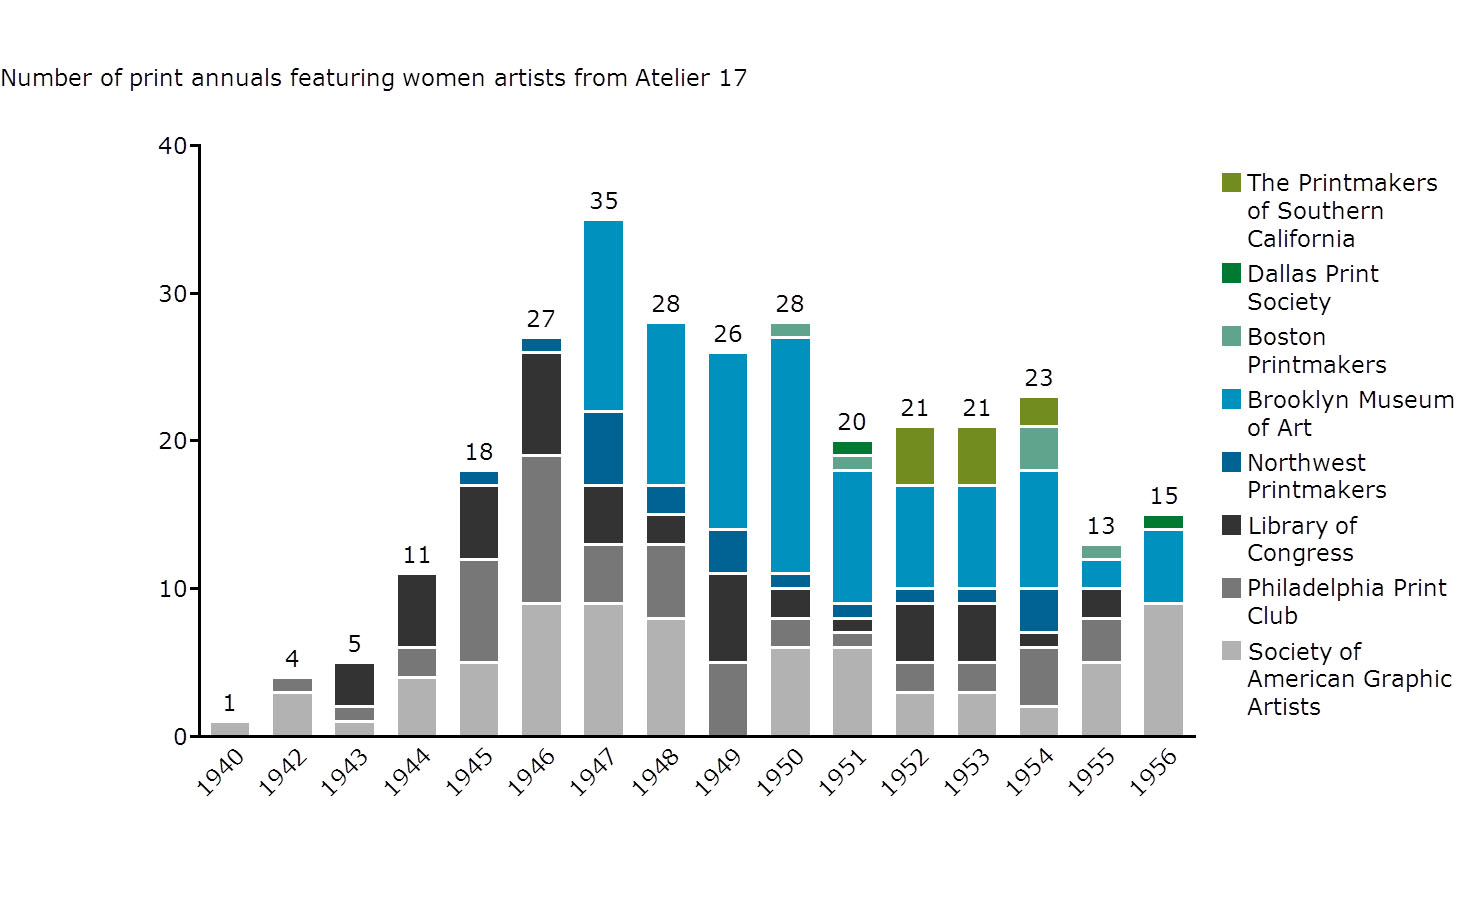 Figure 10. Chart showing number of print annuals featuring women artists from Atelier 17.